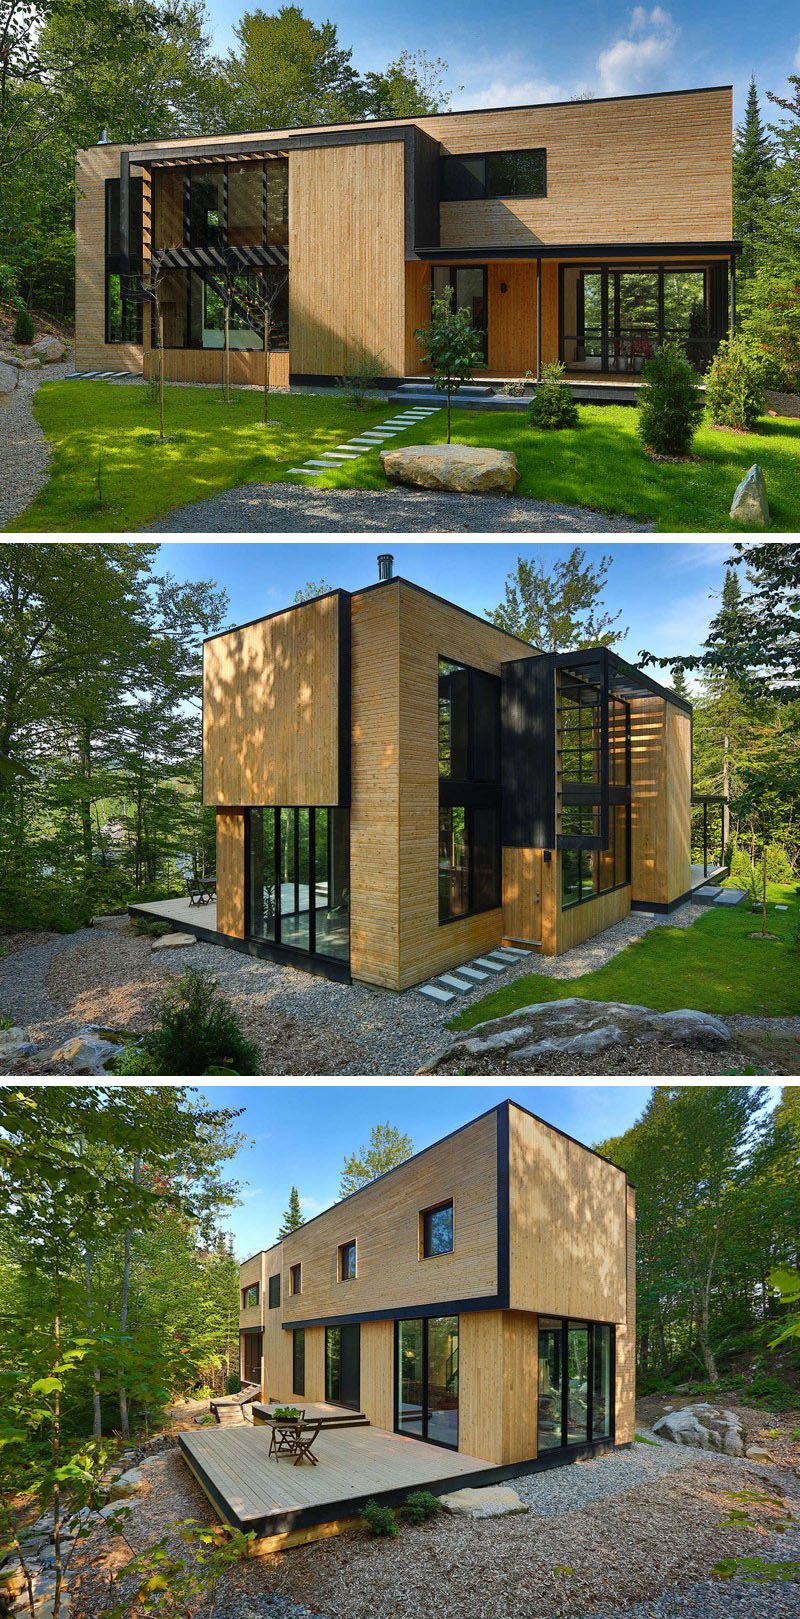 18 modern houses in the forest light colored wood covers the exterior of this house surrounded by forest helping it fit right in among the rest of the